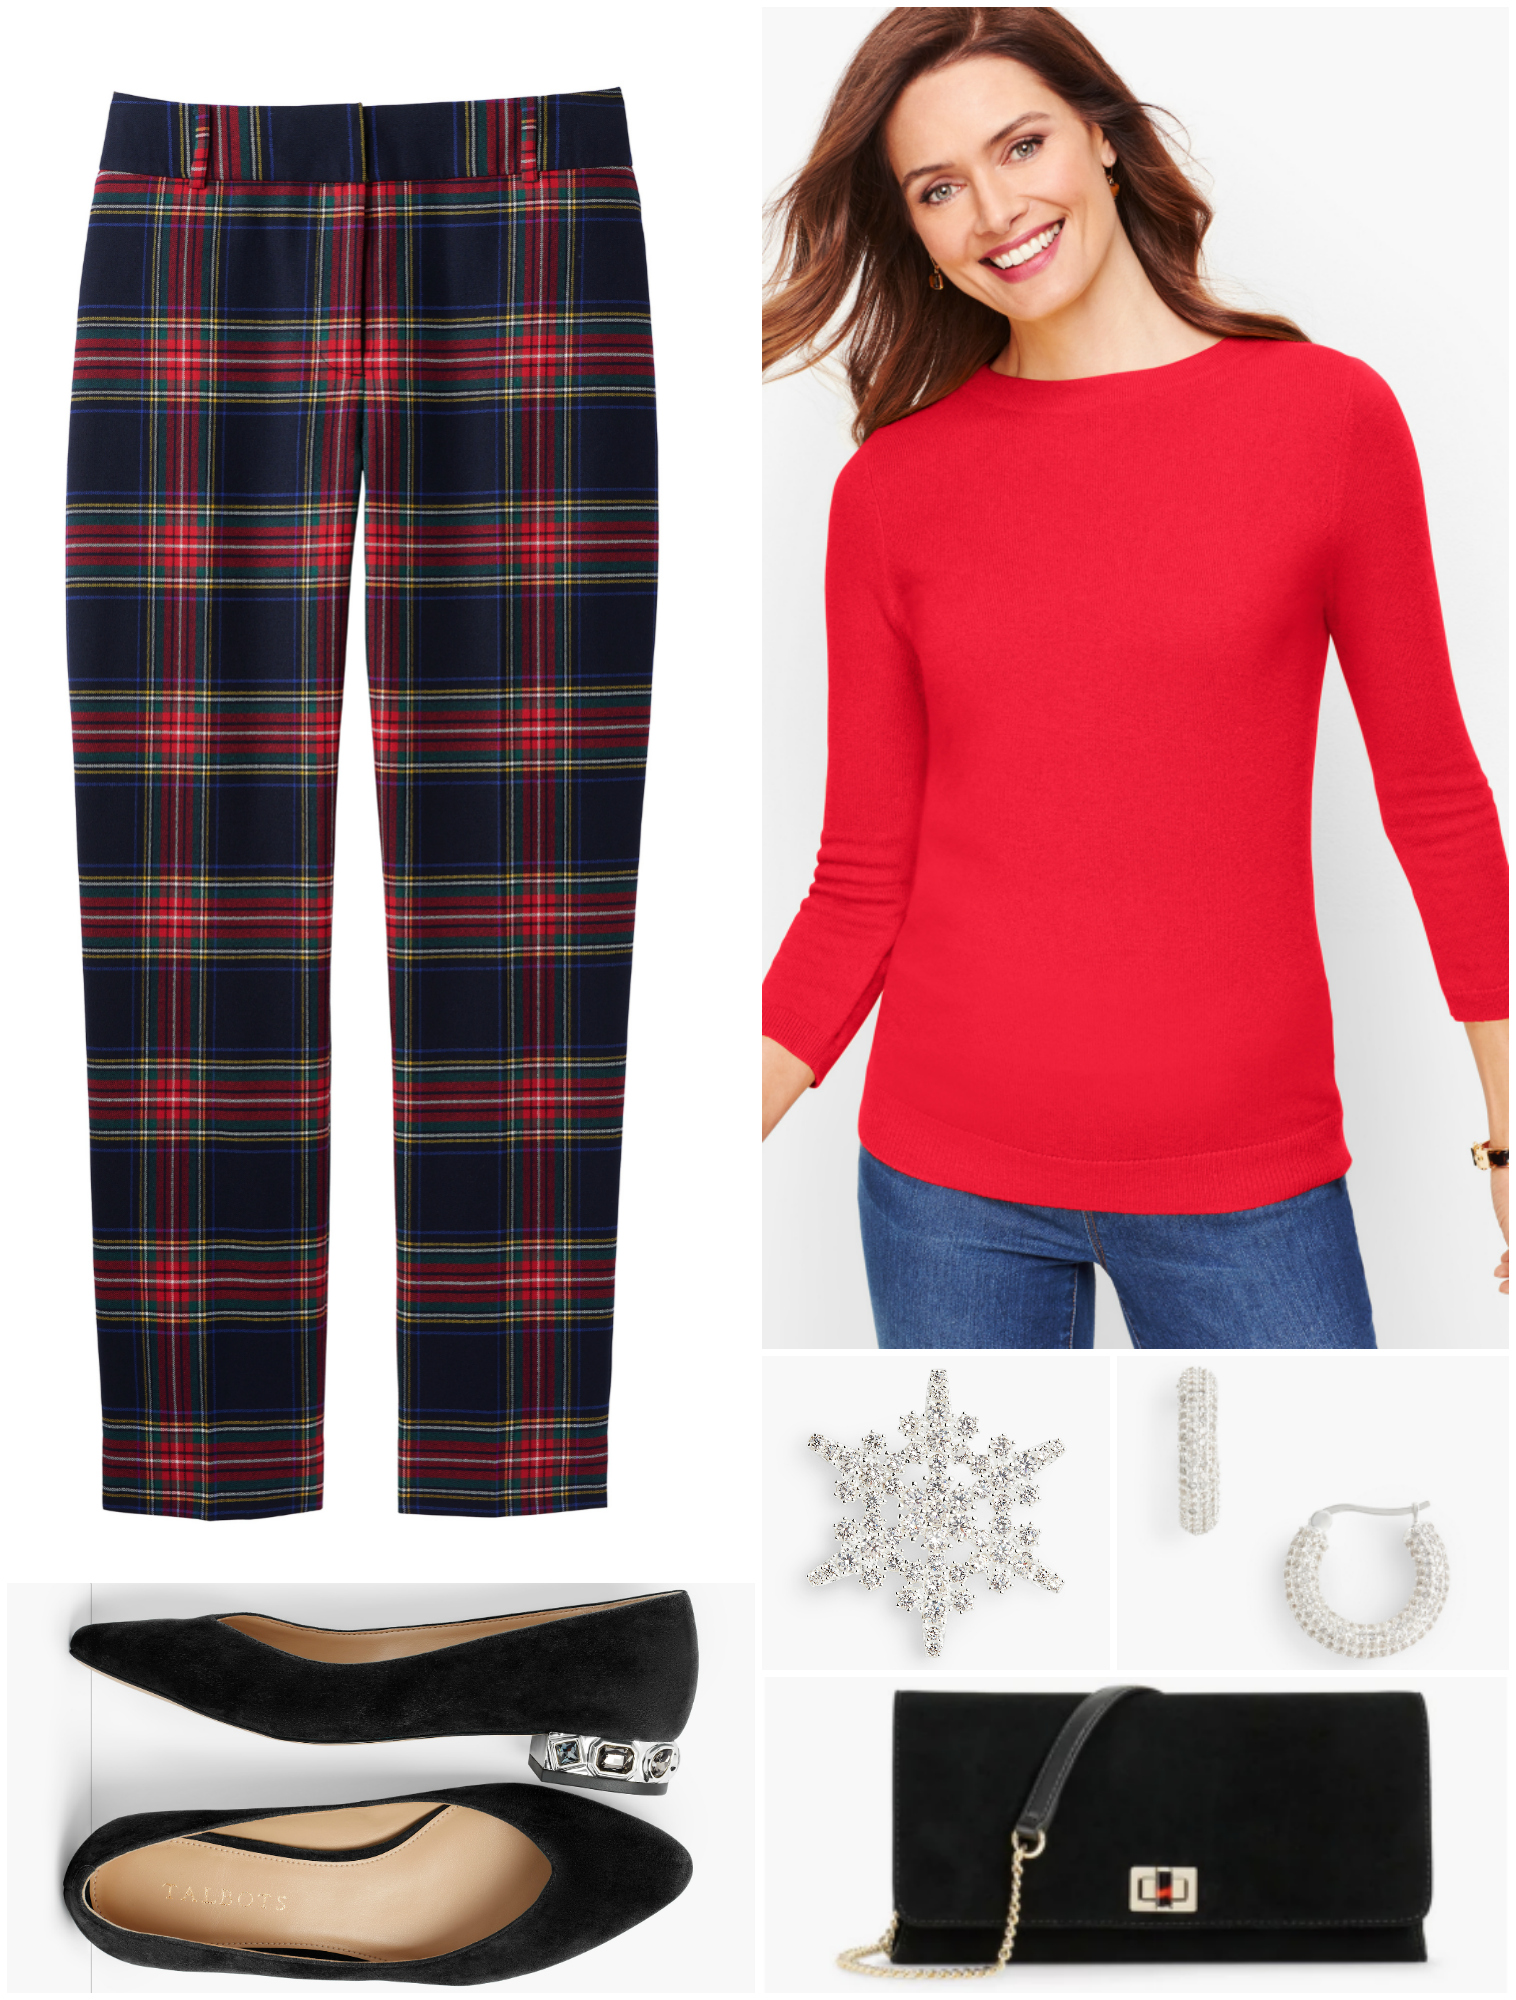 By switching to a red sweater and flats, the look is more relaxed while being more festive.  A snowflake-shaped crystal brooch creates a winter holiday feel